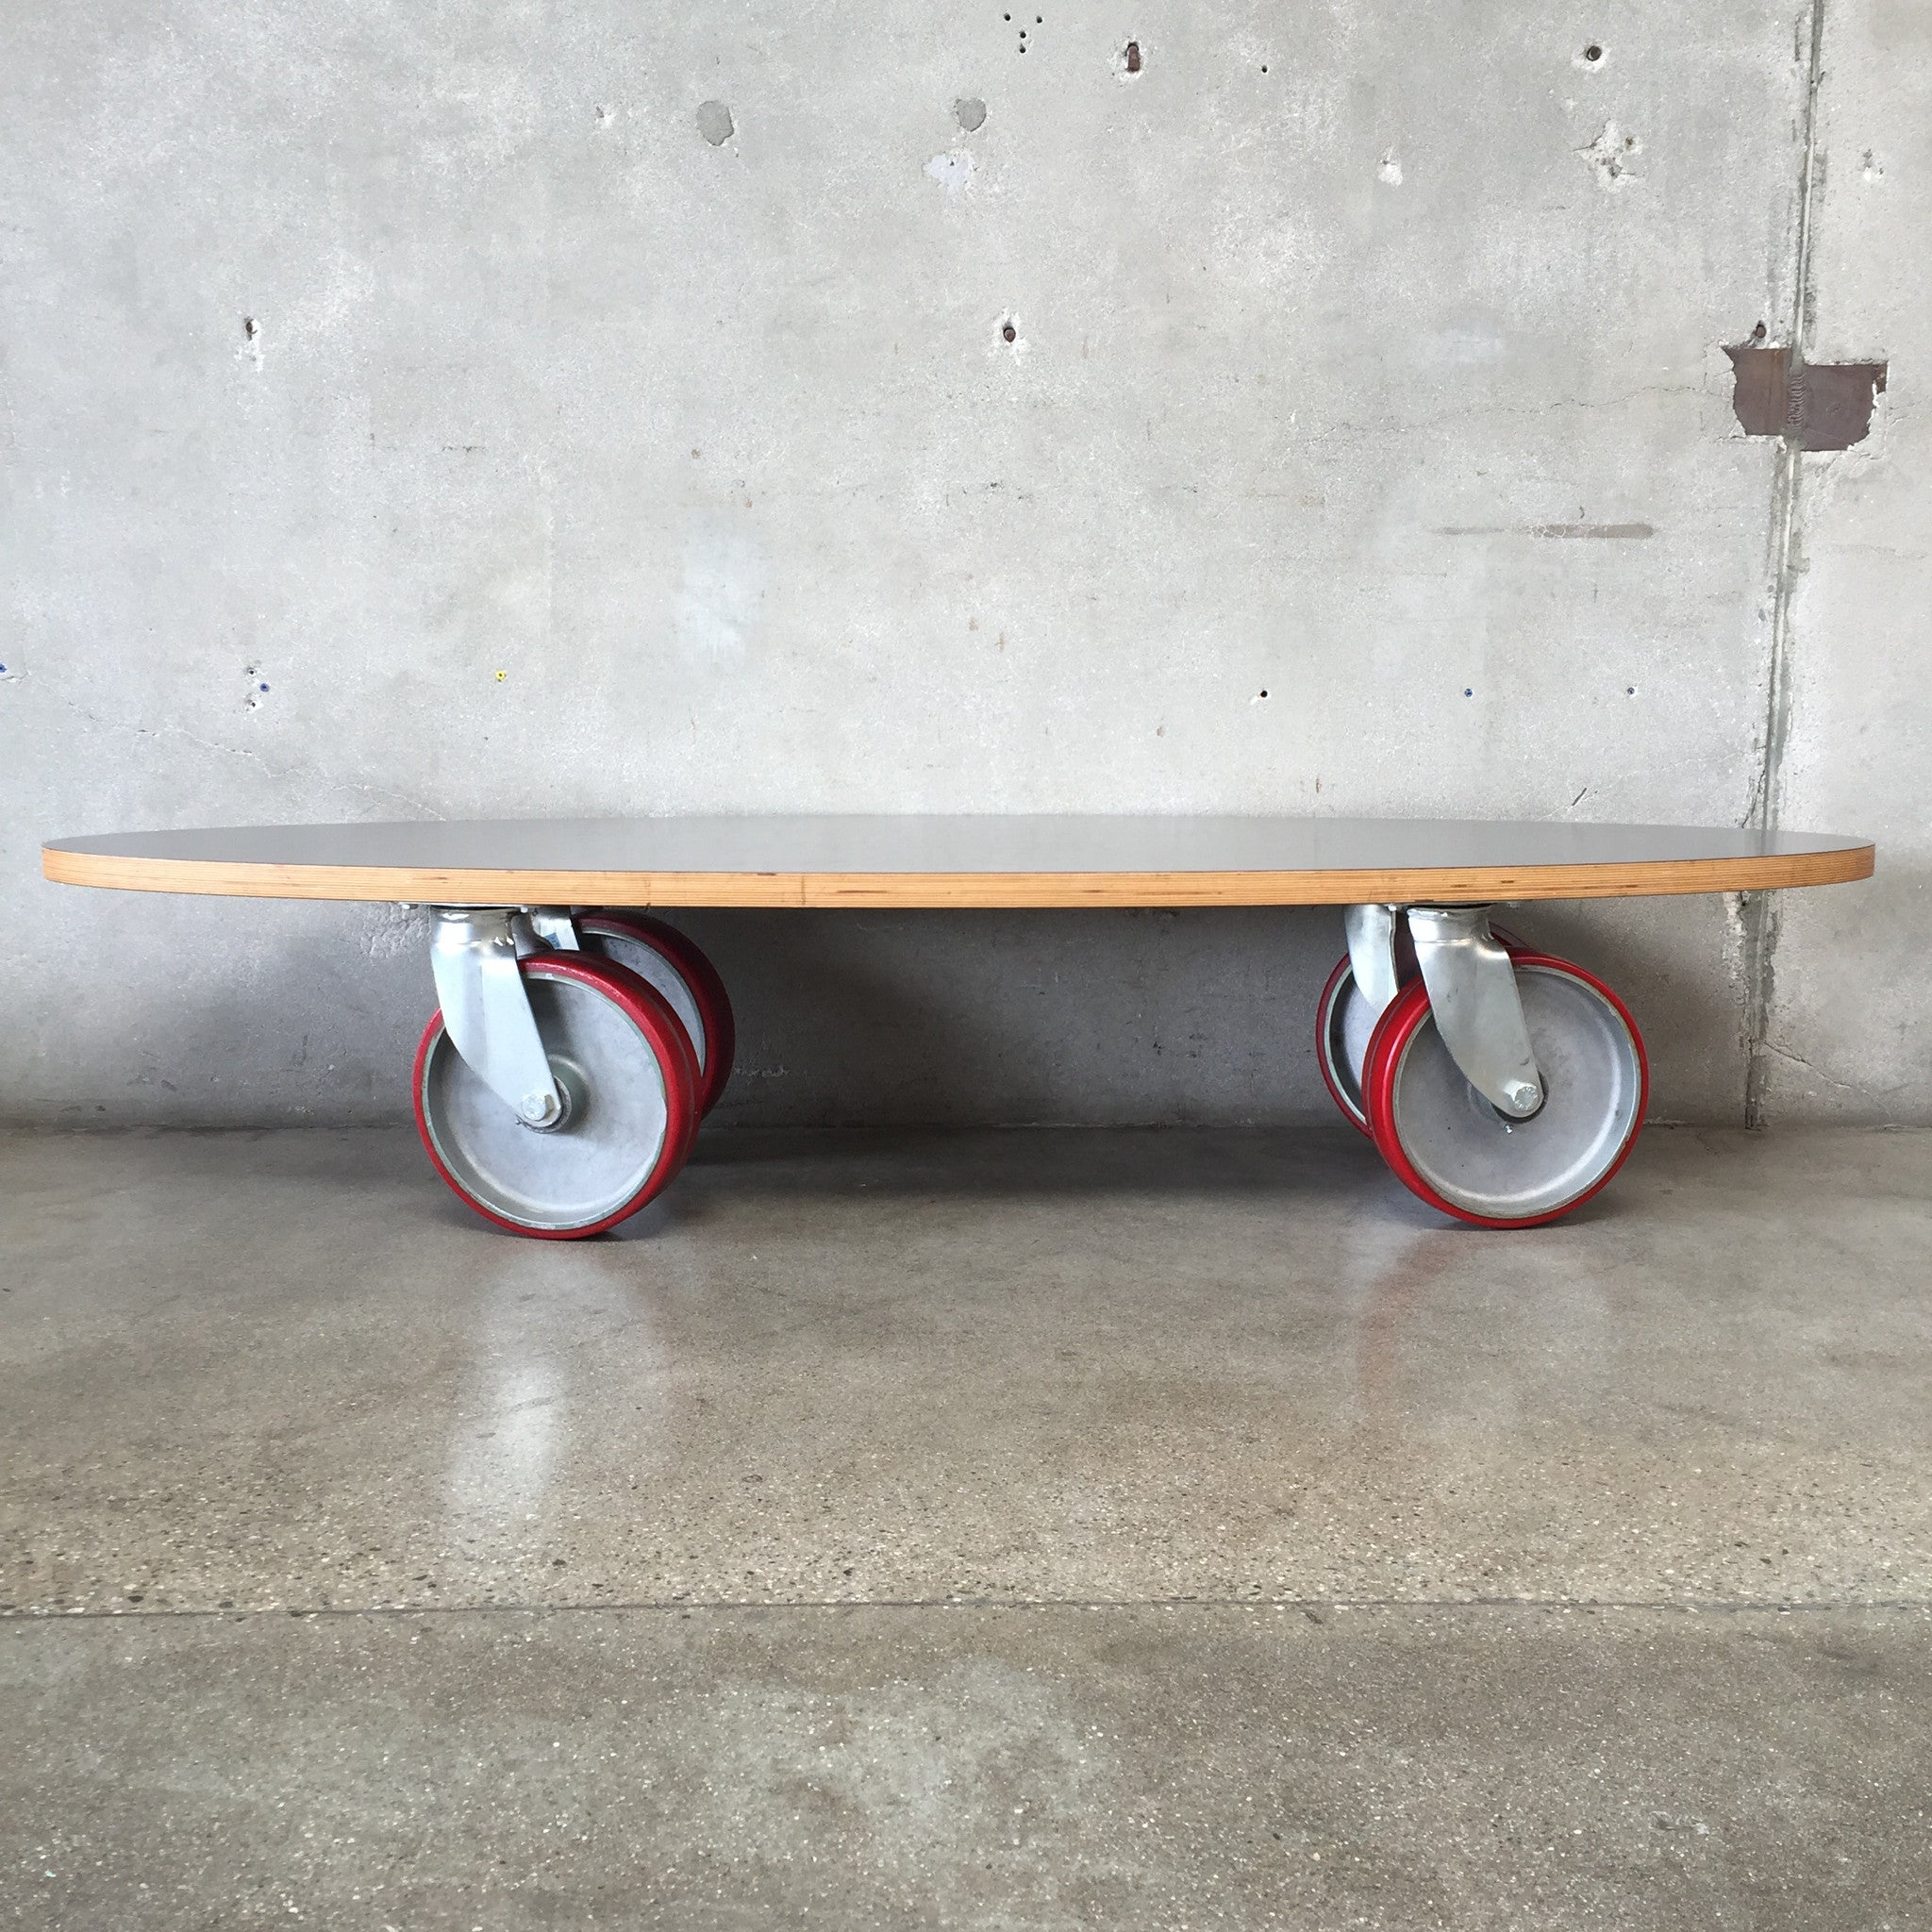 Industrial Skateboard Coffee Table – UrbanAmericana